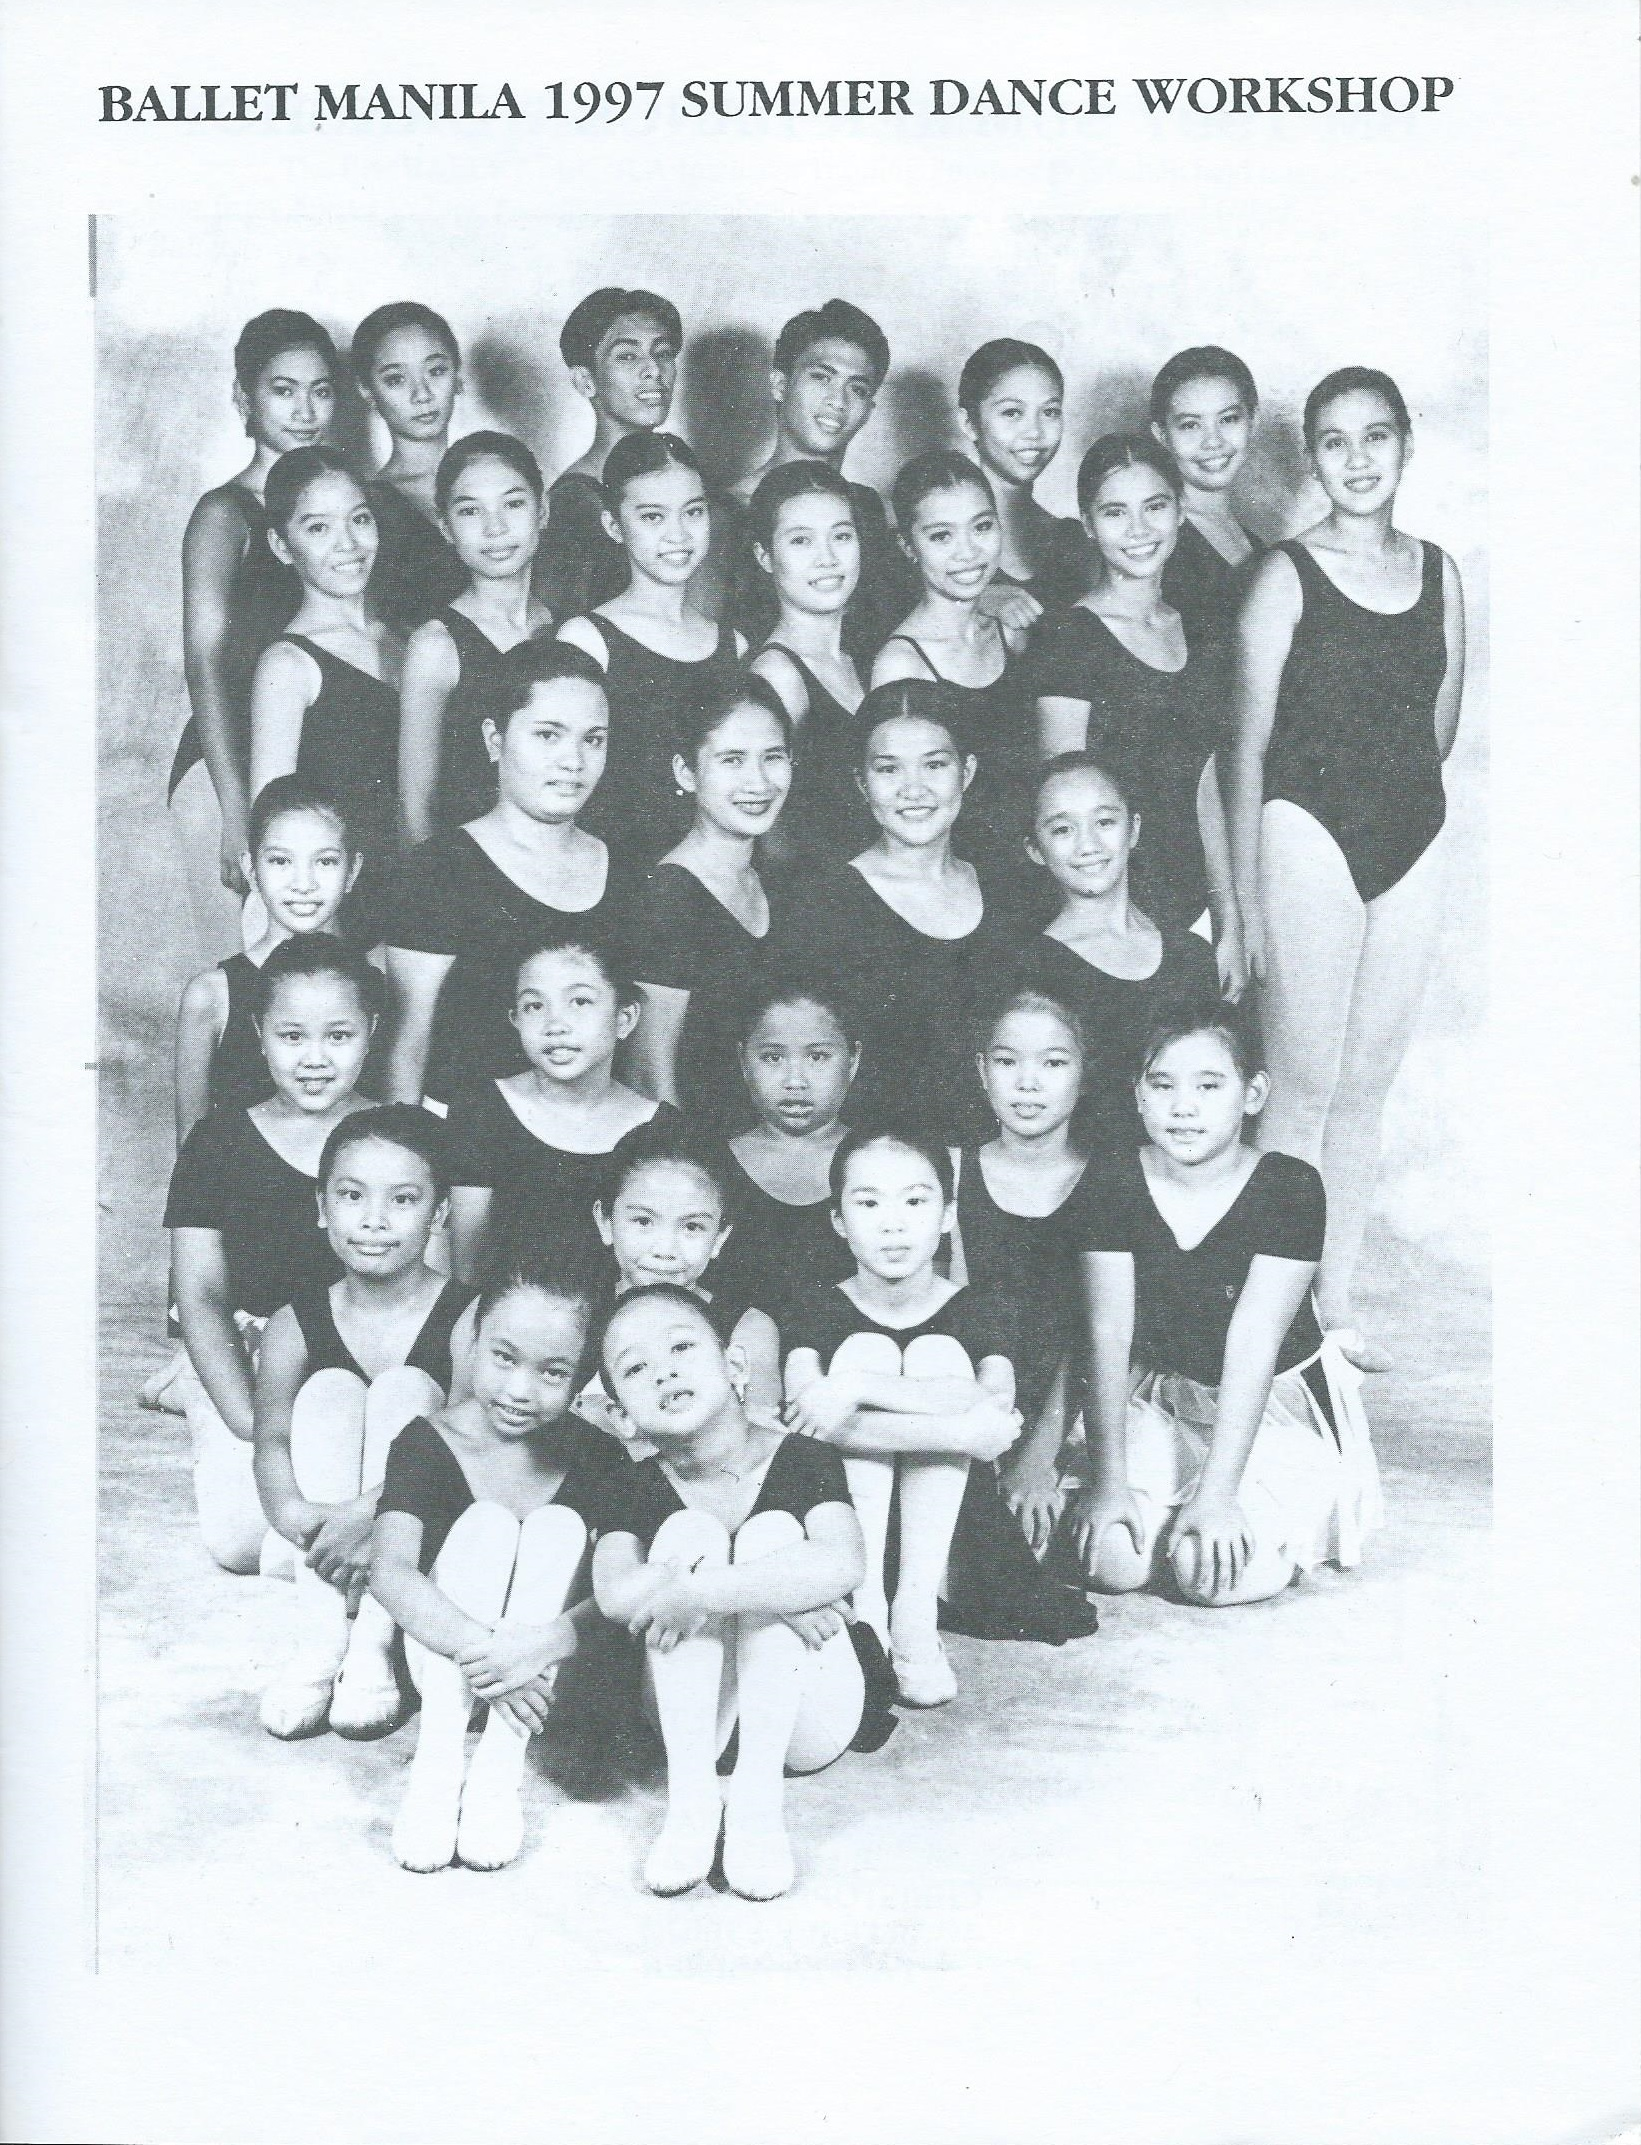 The Ballet Manila School's first batch of summer workshop participants. Photo courtesy of the Ballet Manila Archives